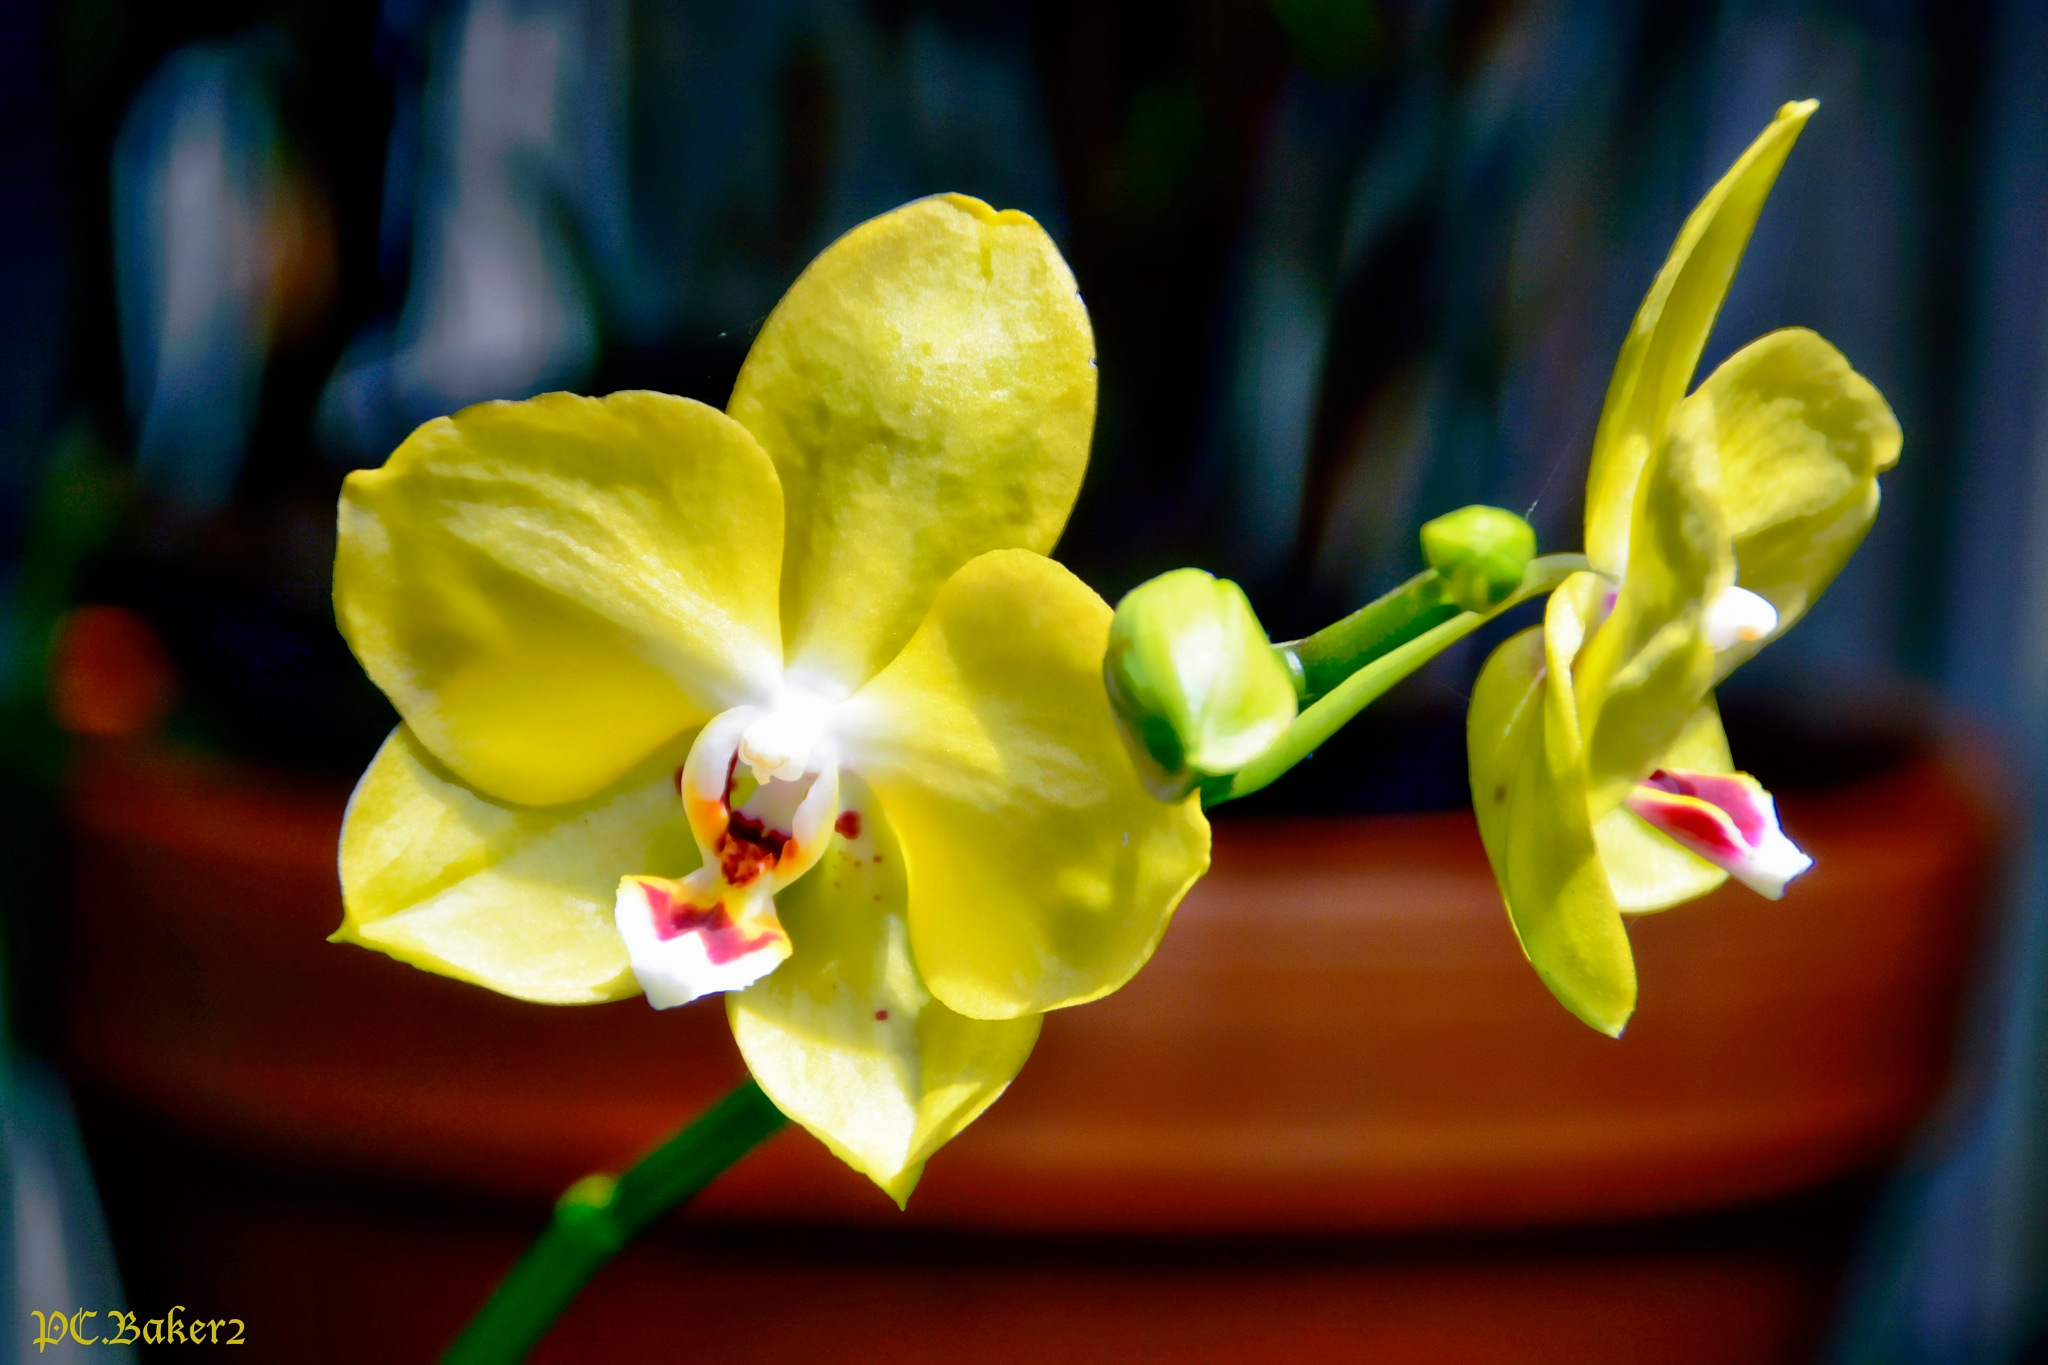 Orchid1 by Pete Baker